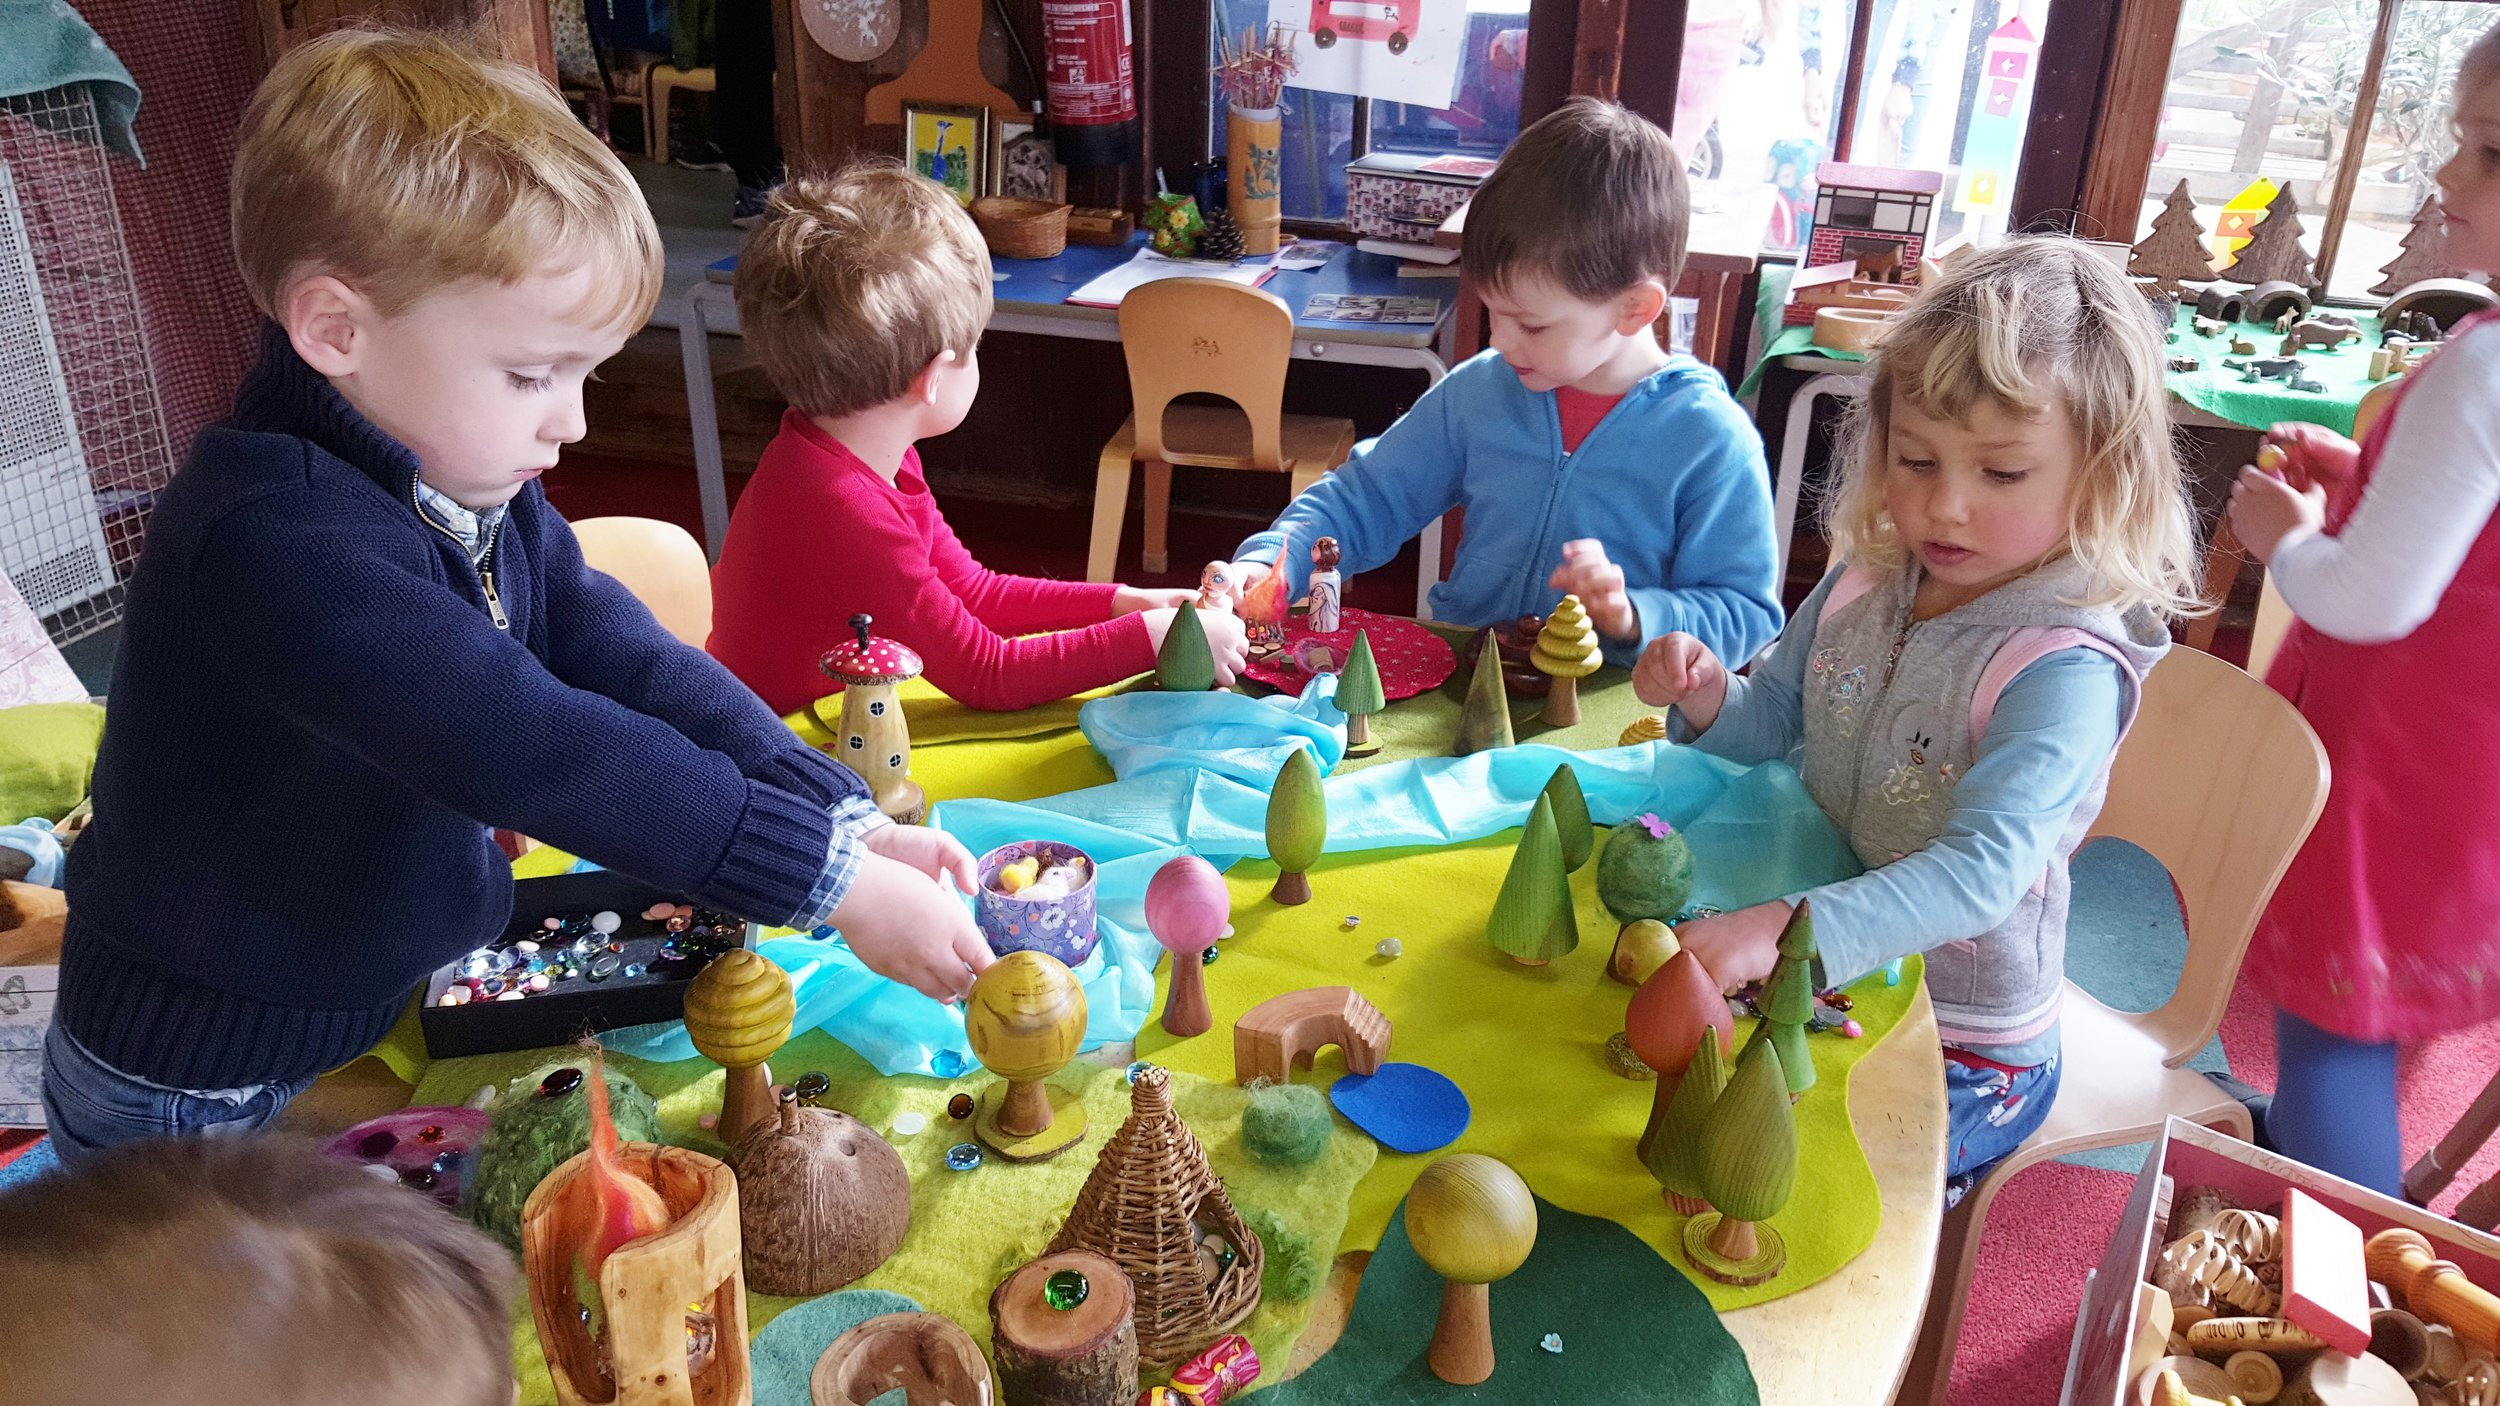 One of the children's favourite activities is creating little worlds with the beautiful wooden Forest Set